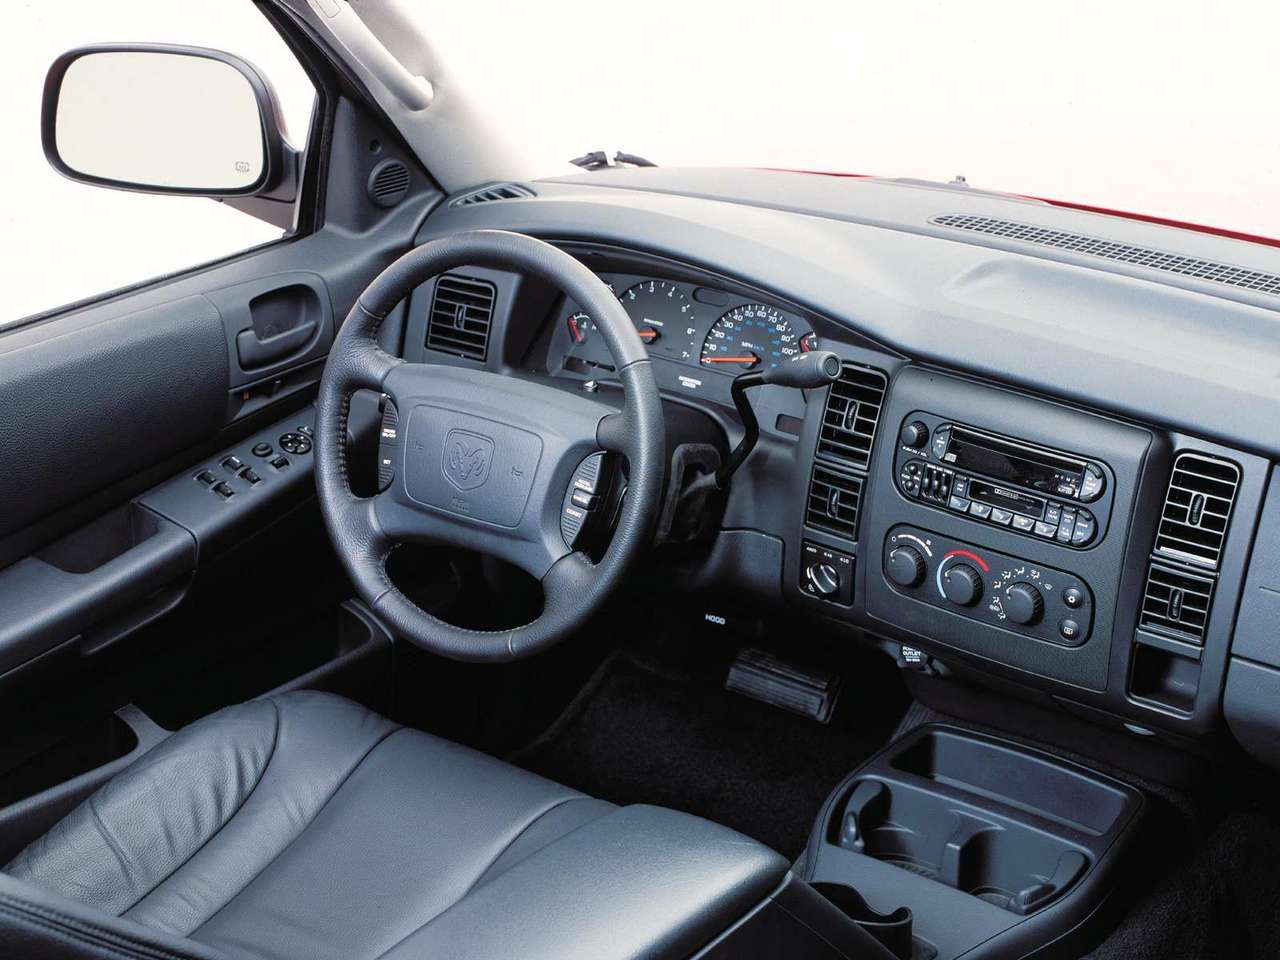 Dodge Dakota X Wallpaper on 2000 Dodge Dakota Quad Cab